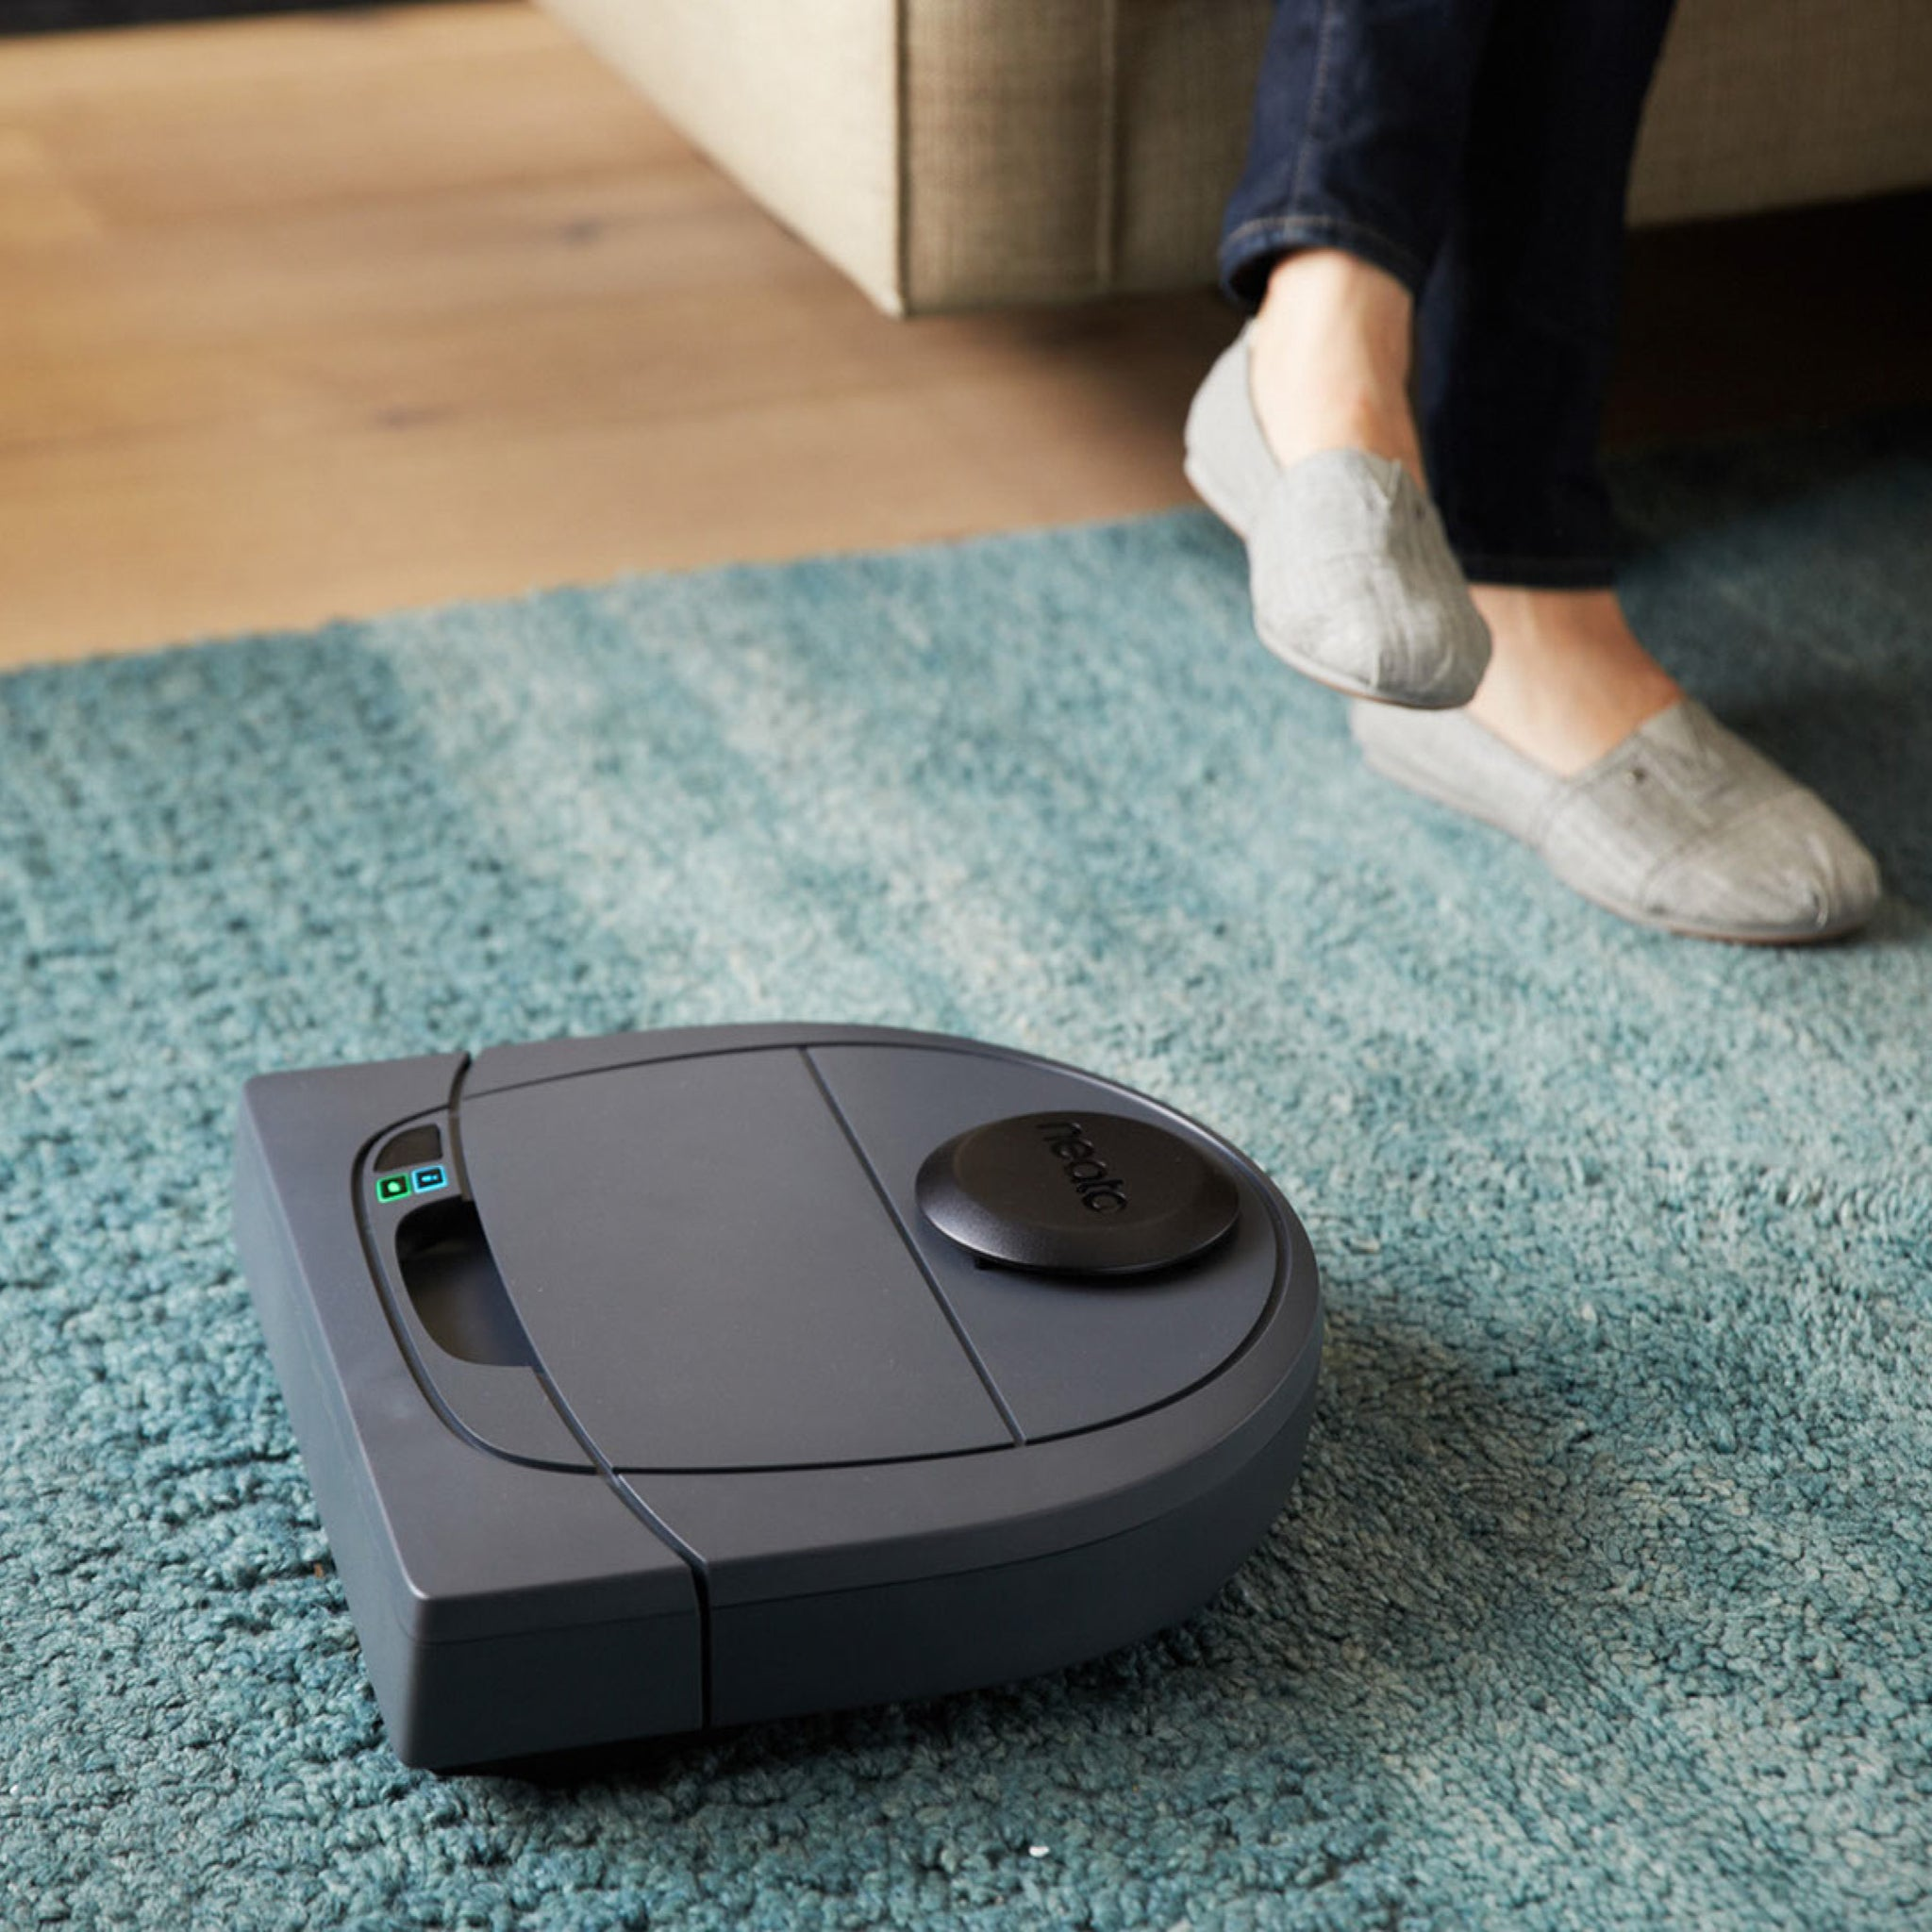 cleaner pet robot junior vacuum floor robotic products by bobsweep